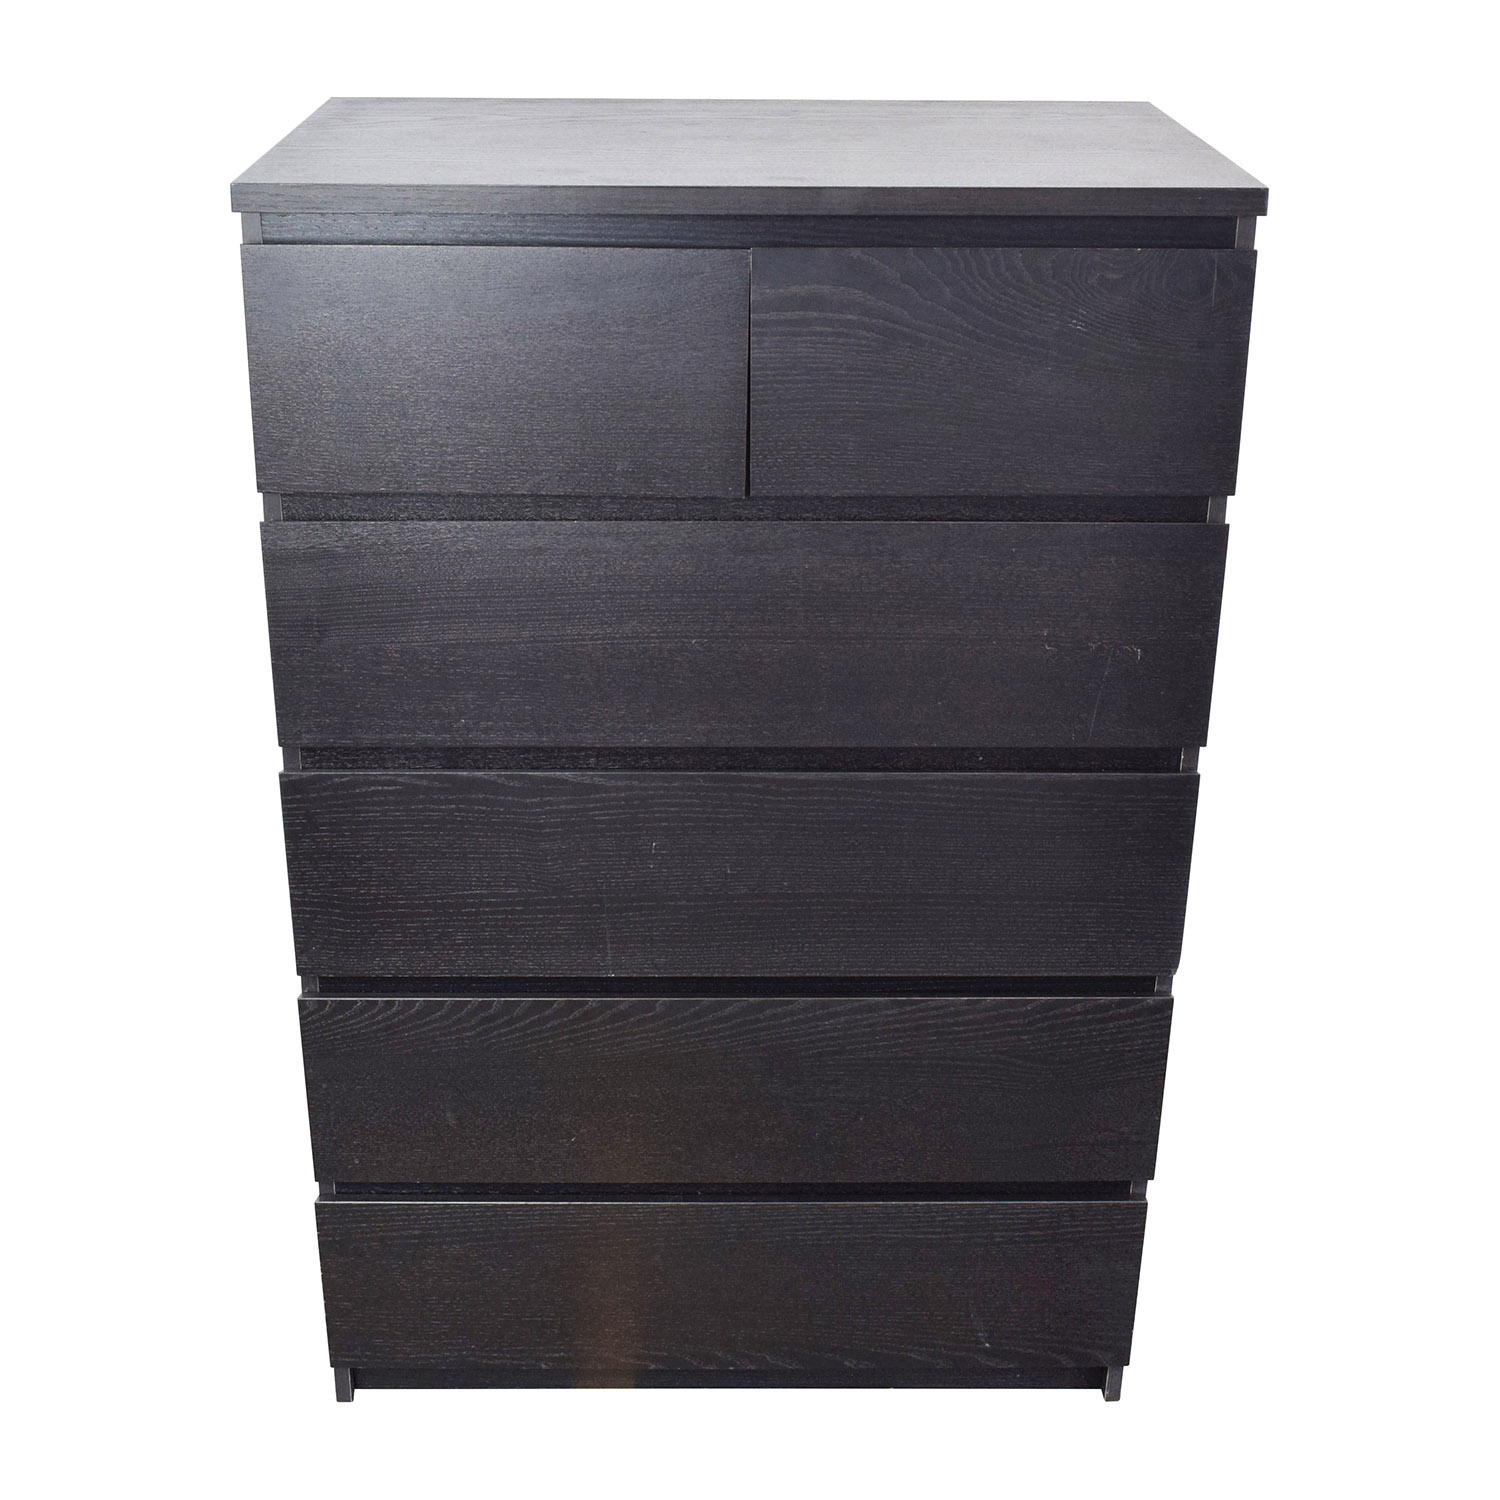 Ikea Malm Tall 6 Drawer Dresser Online